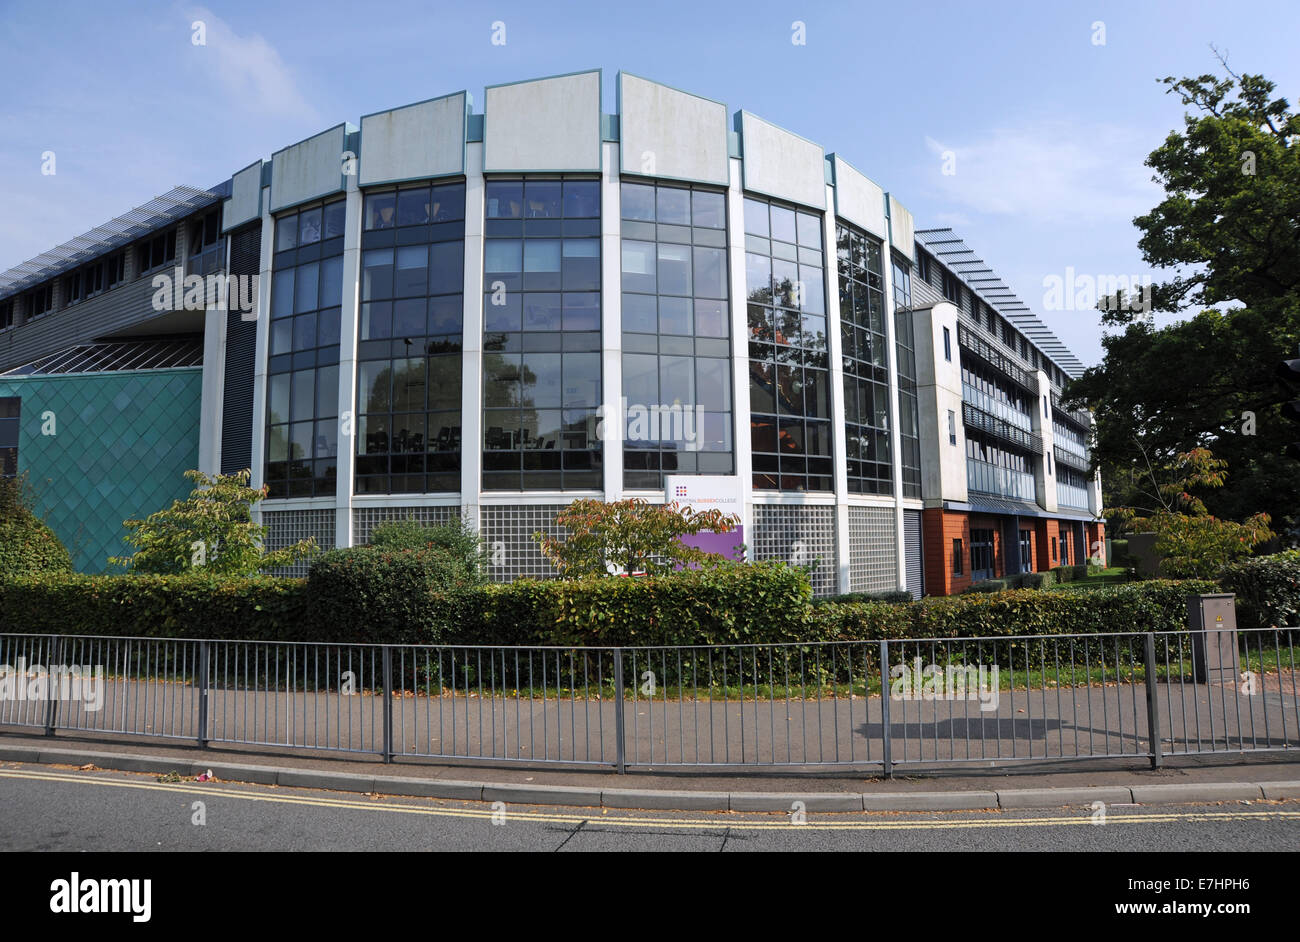 Crawley West Sussex UK - Central Sussex College - Stock Image